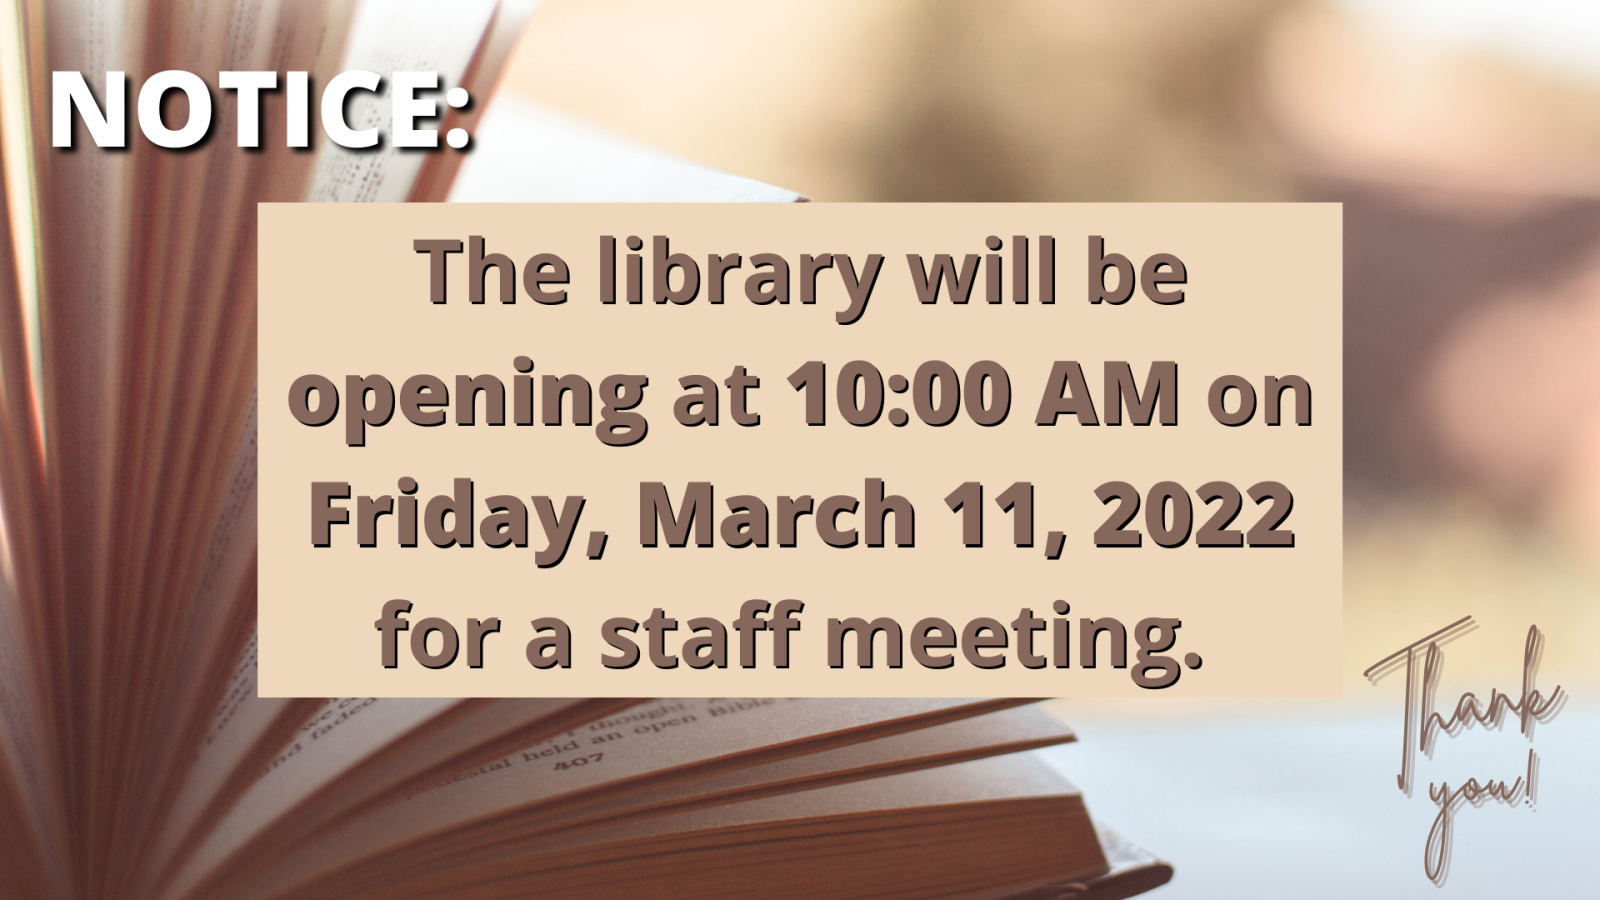 The library will be closed on January 18th